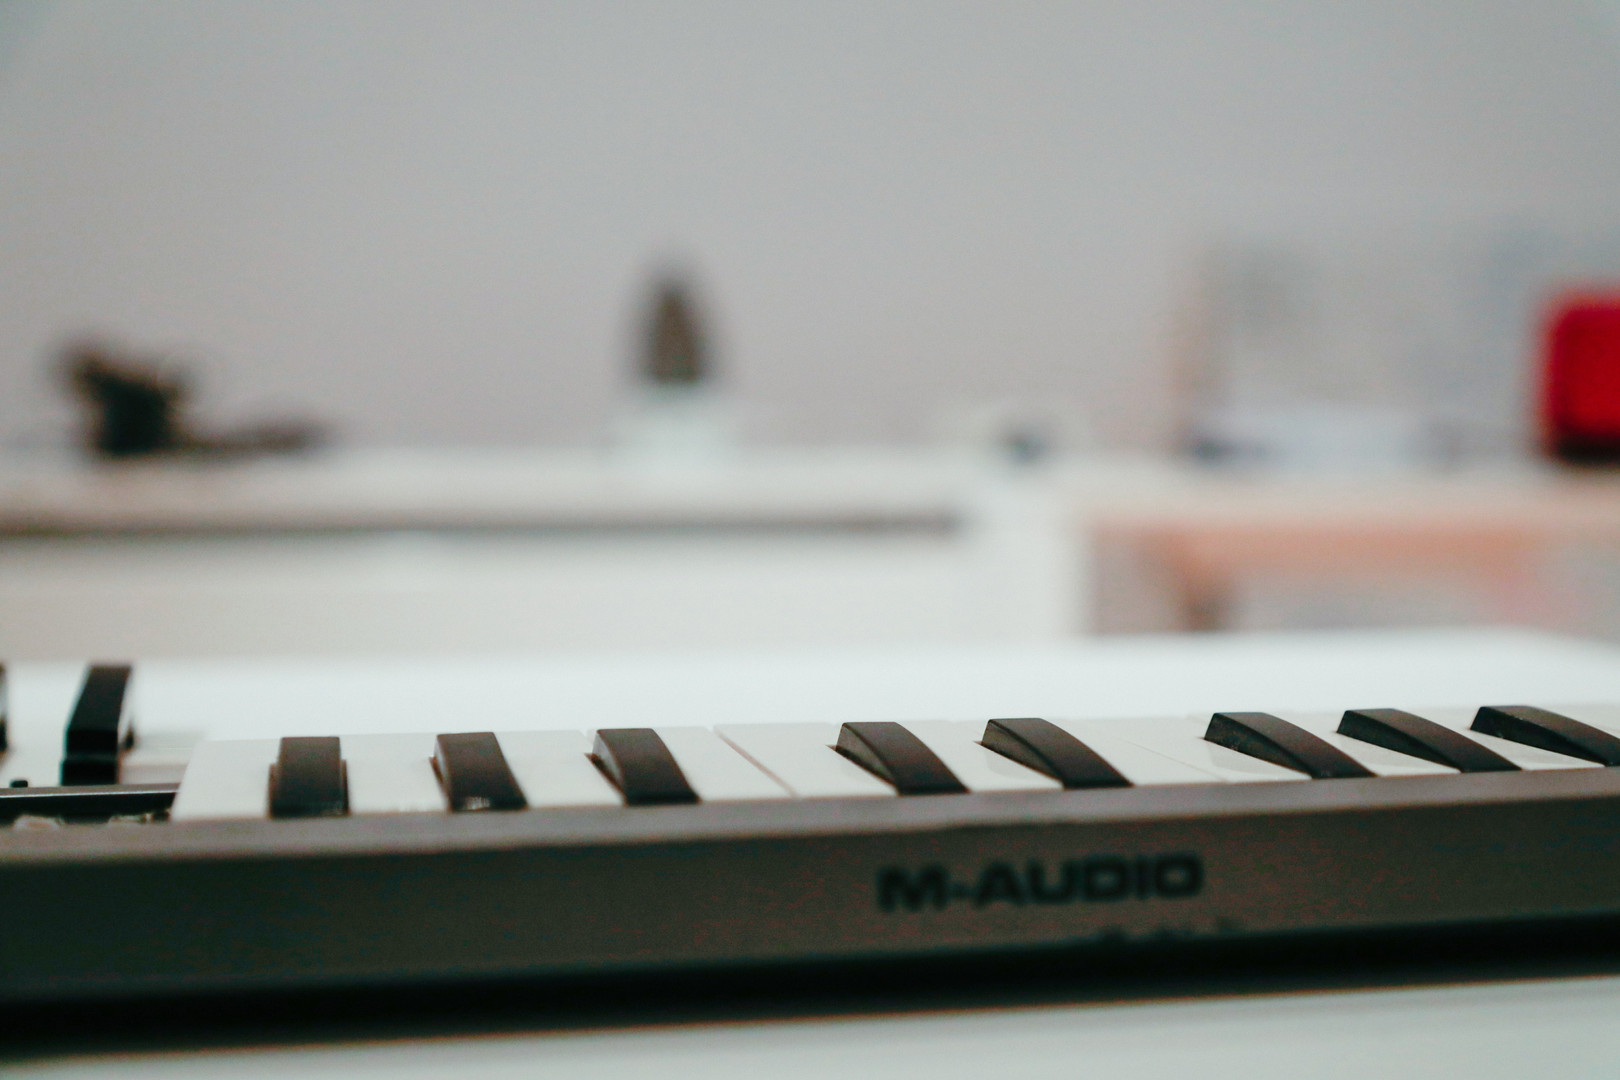 Broken M-Audio Keyboard